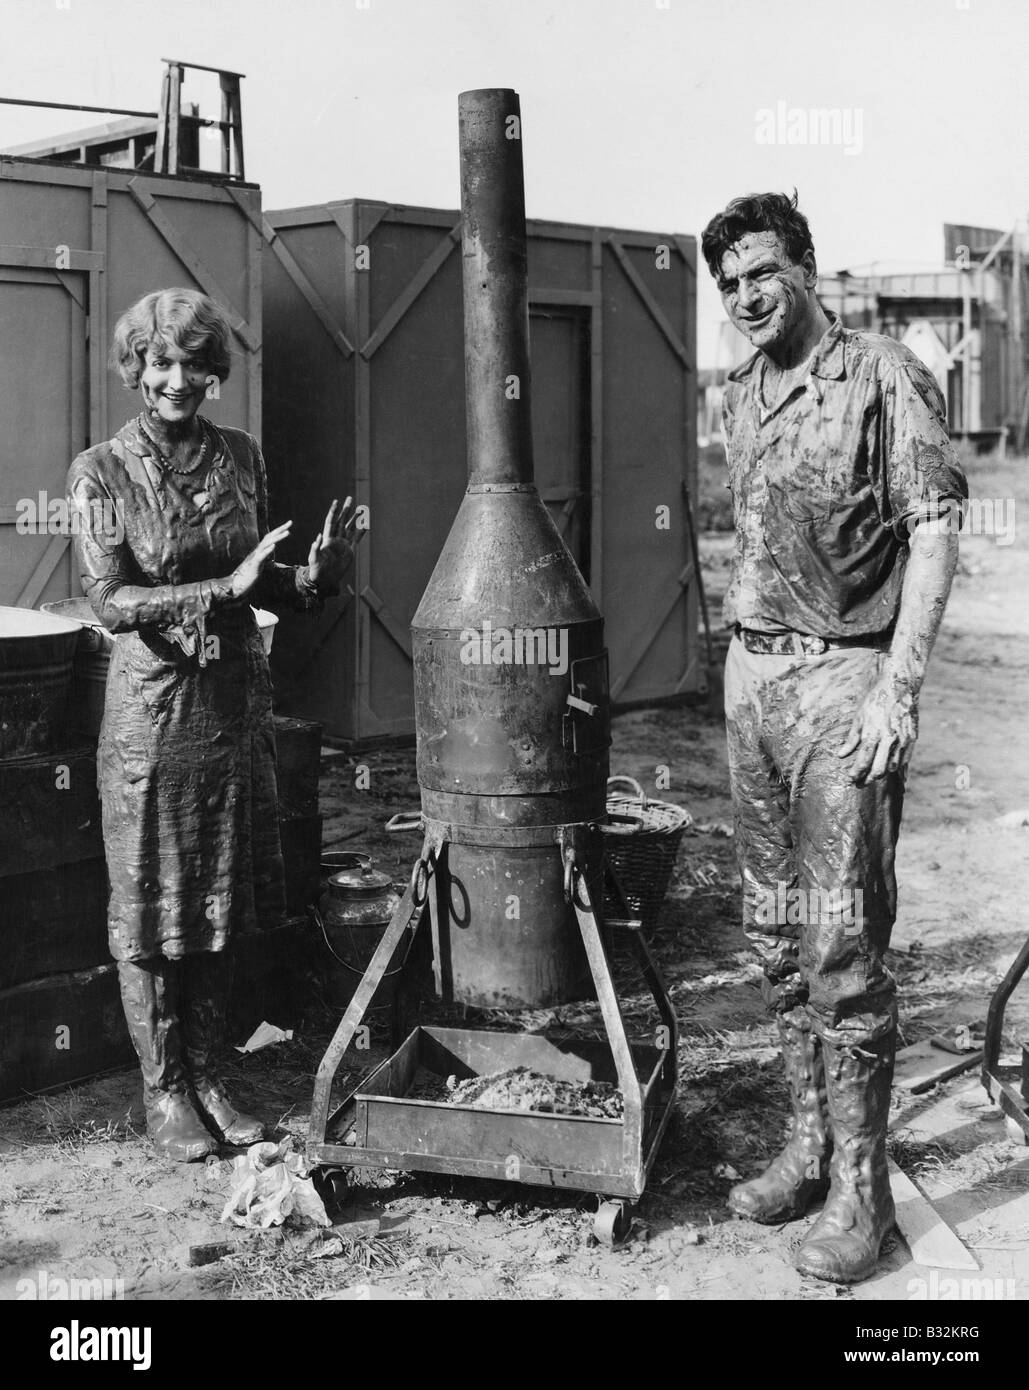 Mud covered couple with portable stove - Stock Image